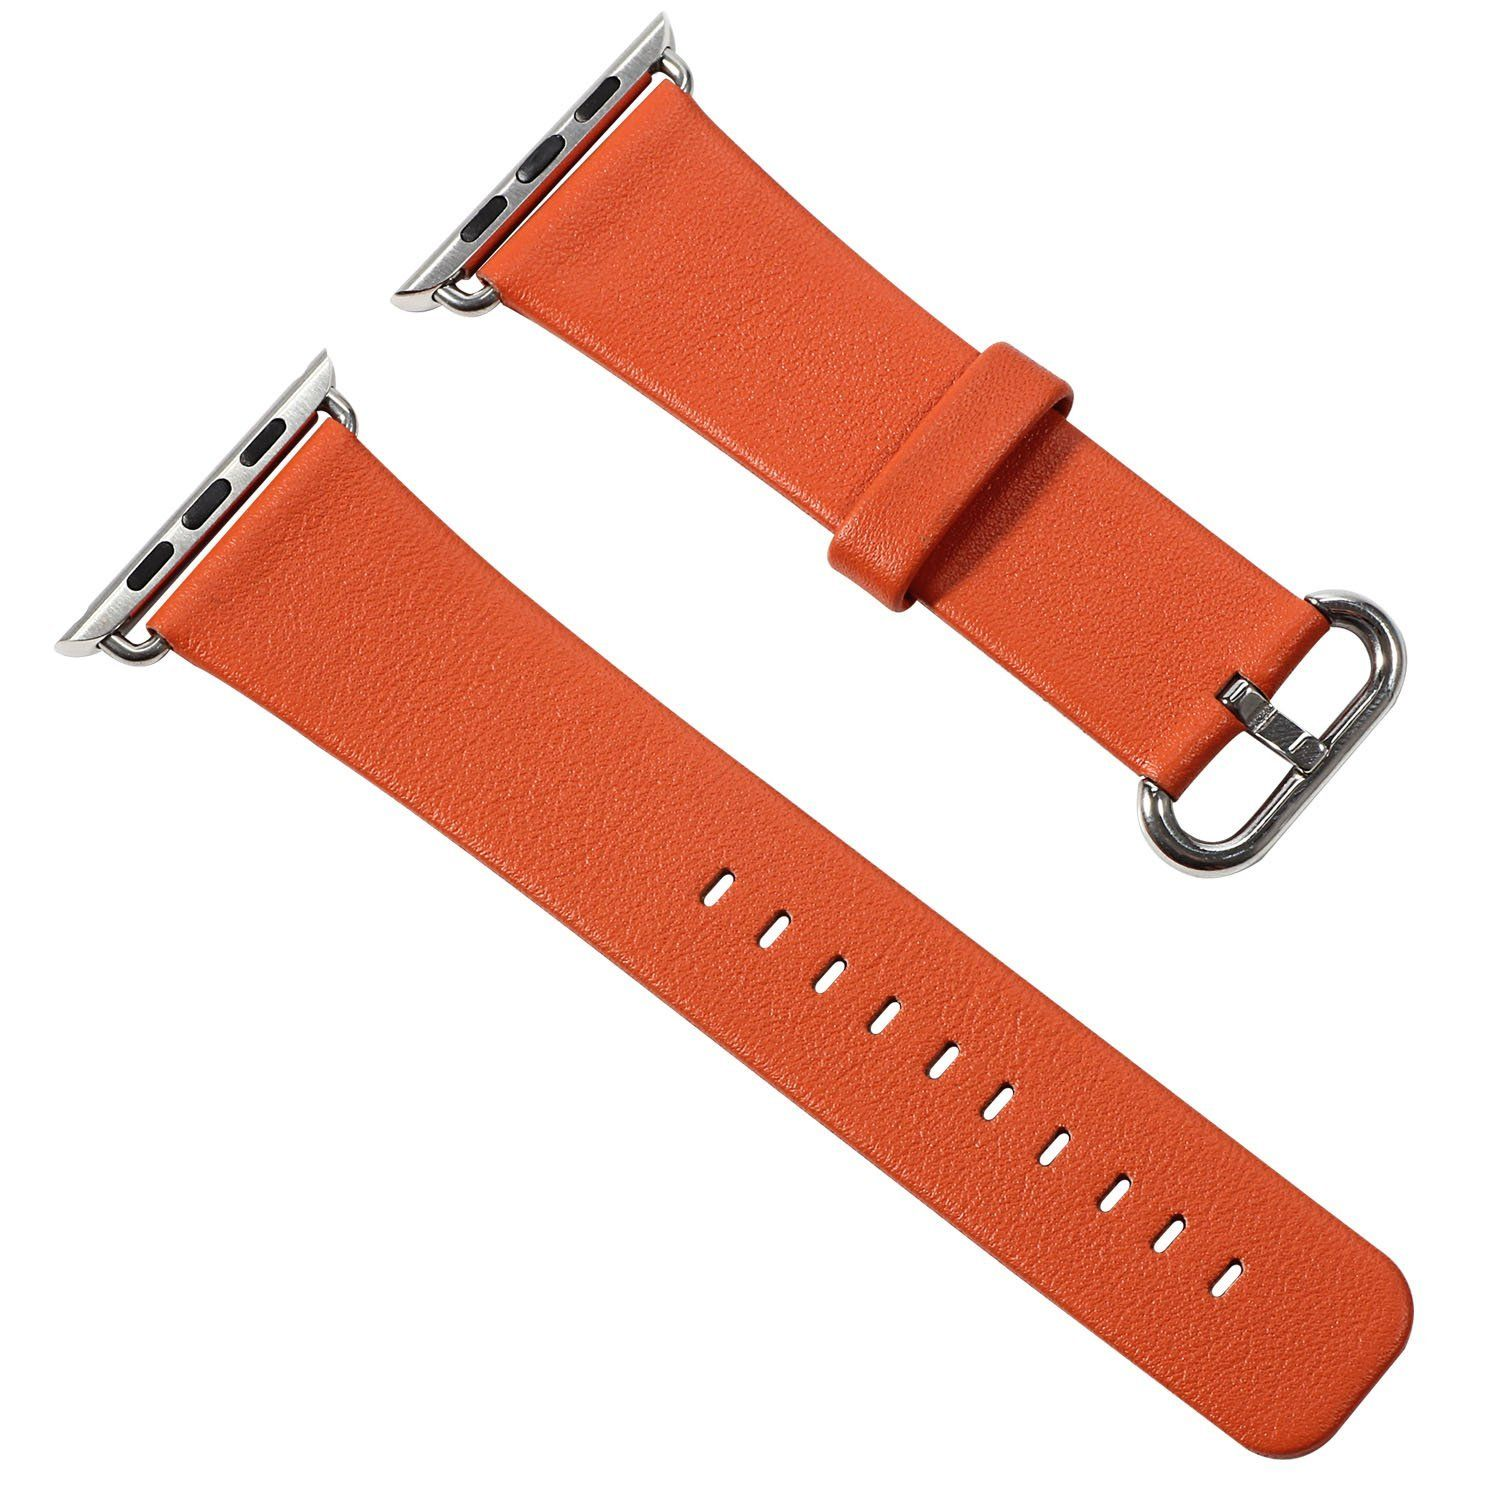 Eyexplo Apple Watch Band, Luxury 42mm Genuine Leather Replacement Strap Wrist Band W/metal Clap for Apple Watch